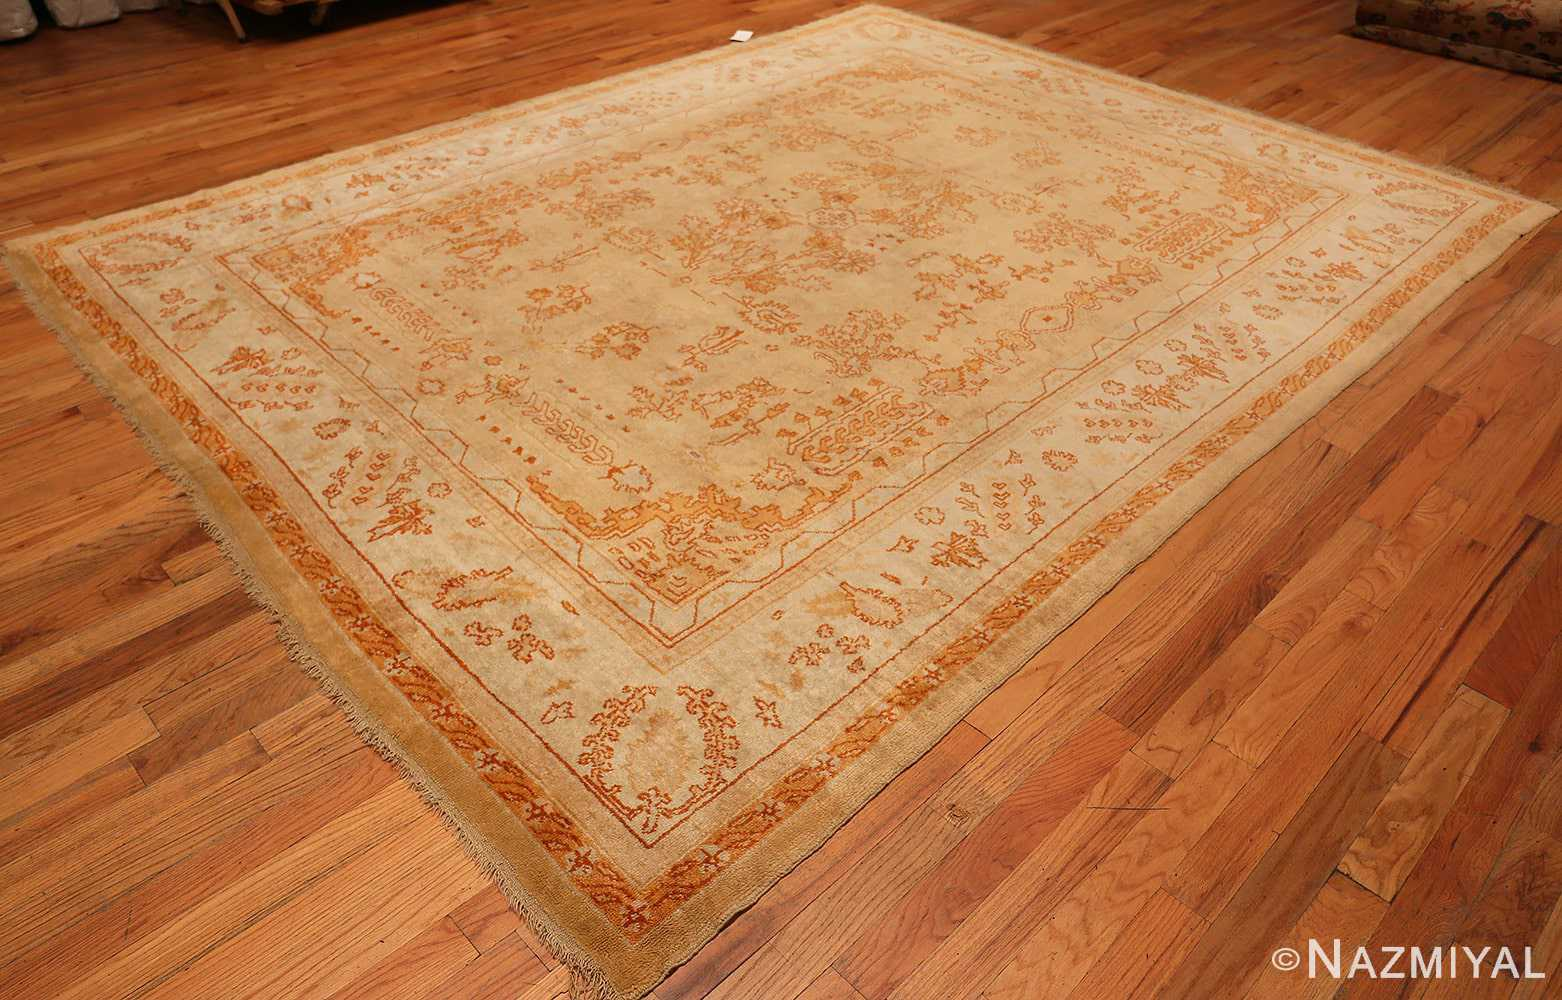 Decorative Antique Turkish Oushak Rug 70260 Nazmiyal Rugs